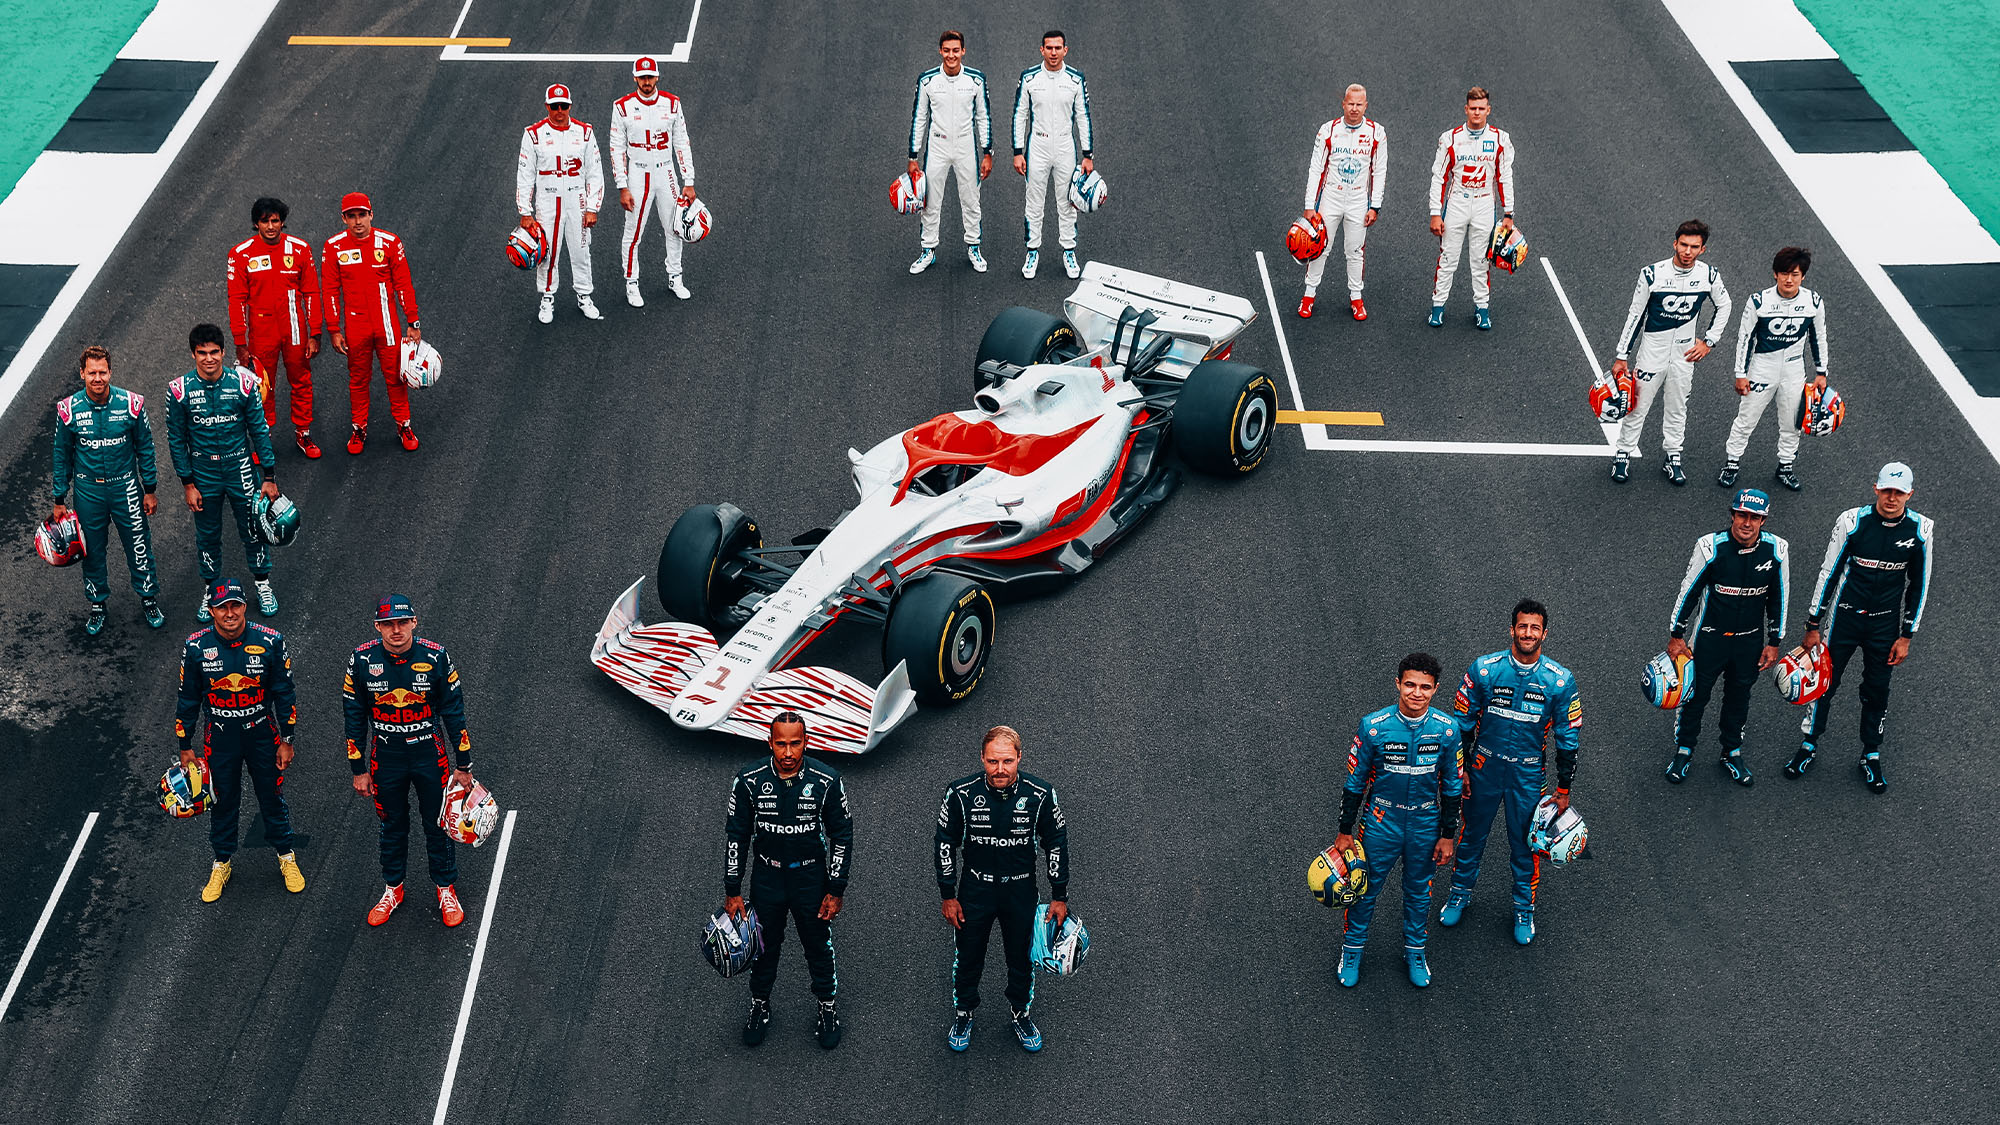 F1 2022 car with F1 drivers from different teams surrounding it